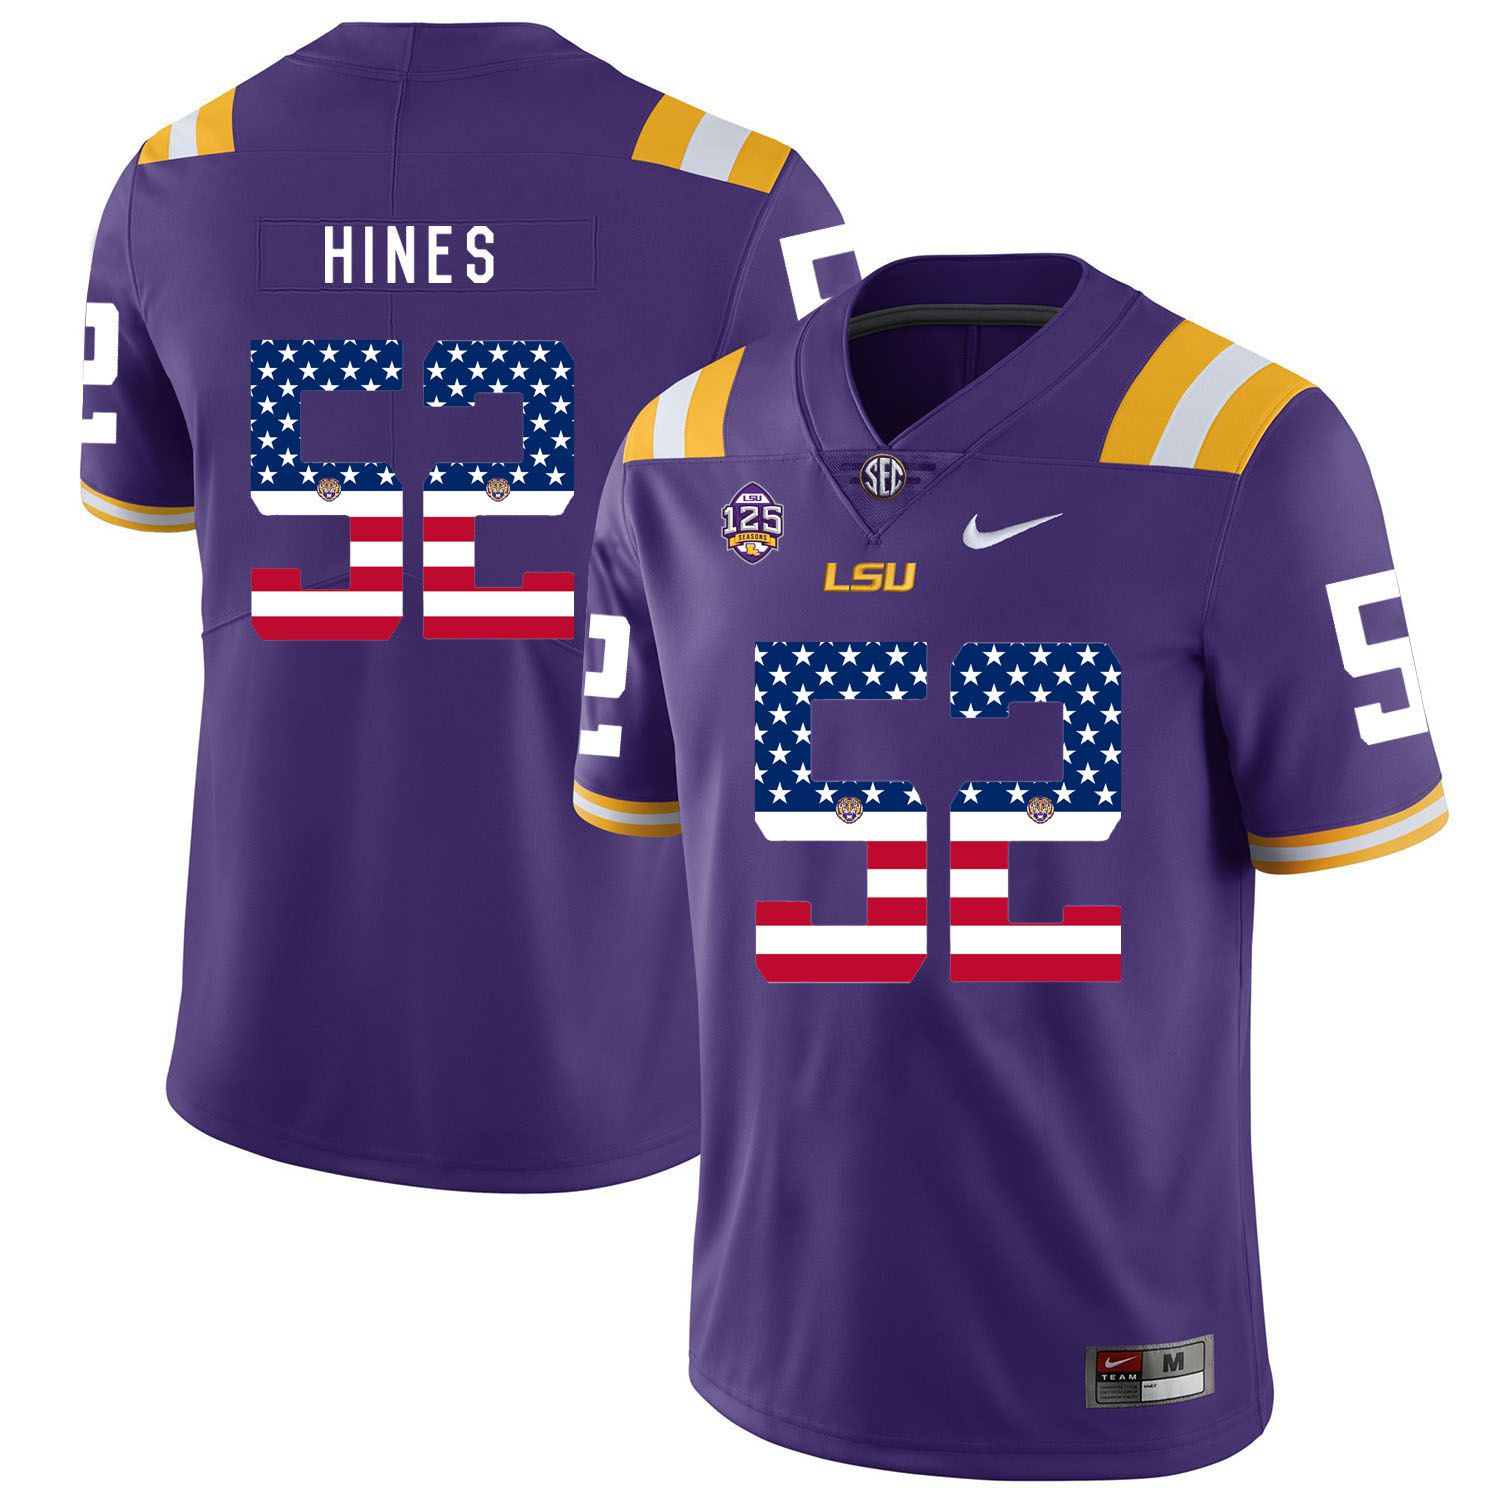 Men LSU Tigers 52 Hines Purple Flag Customized NCAA Jerseys